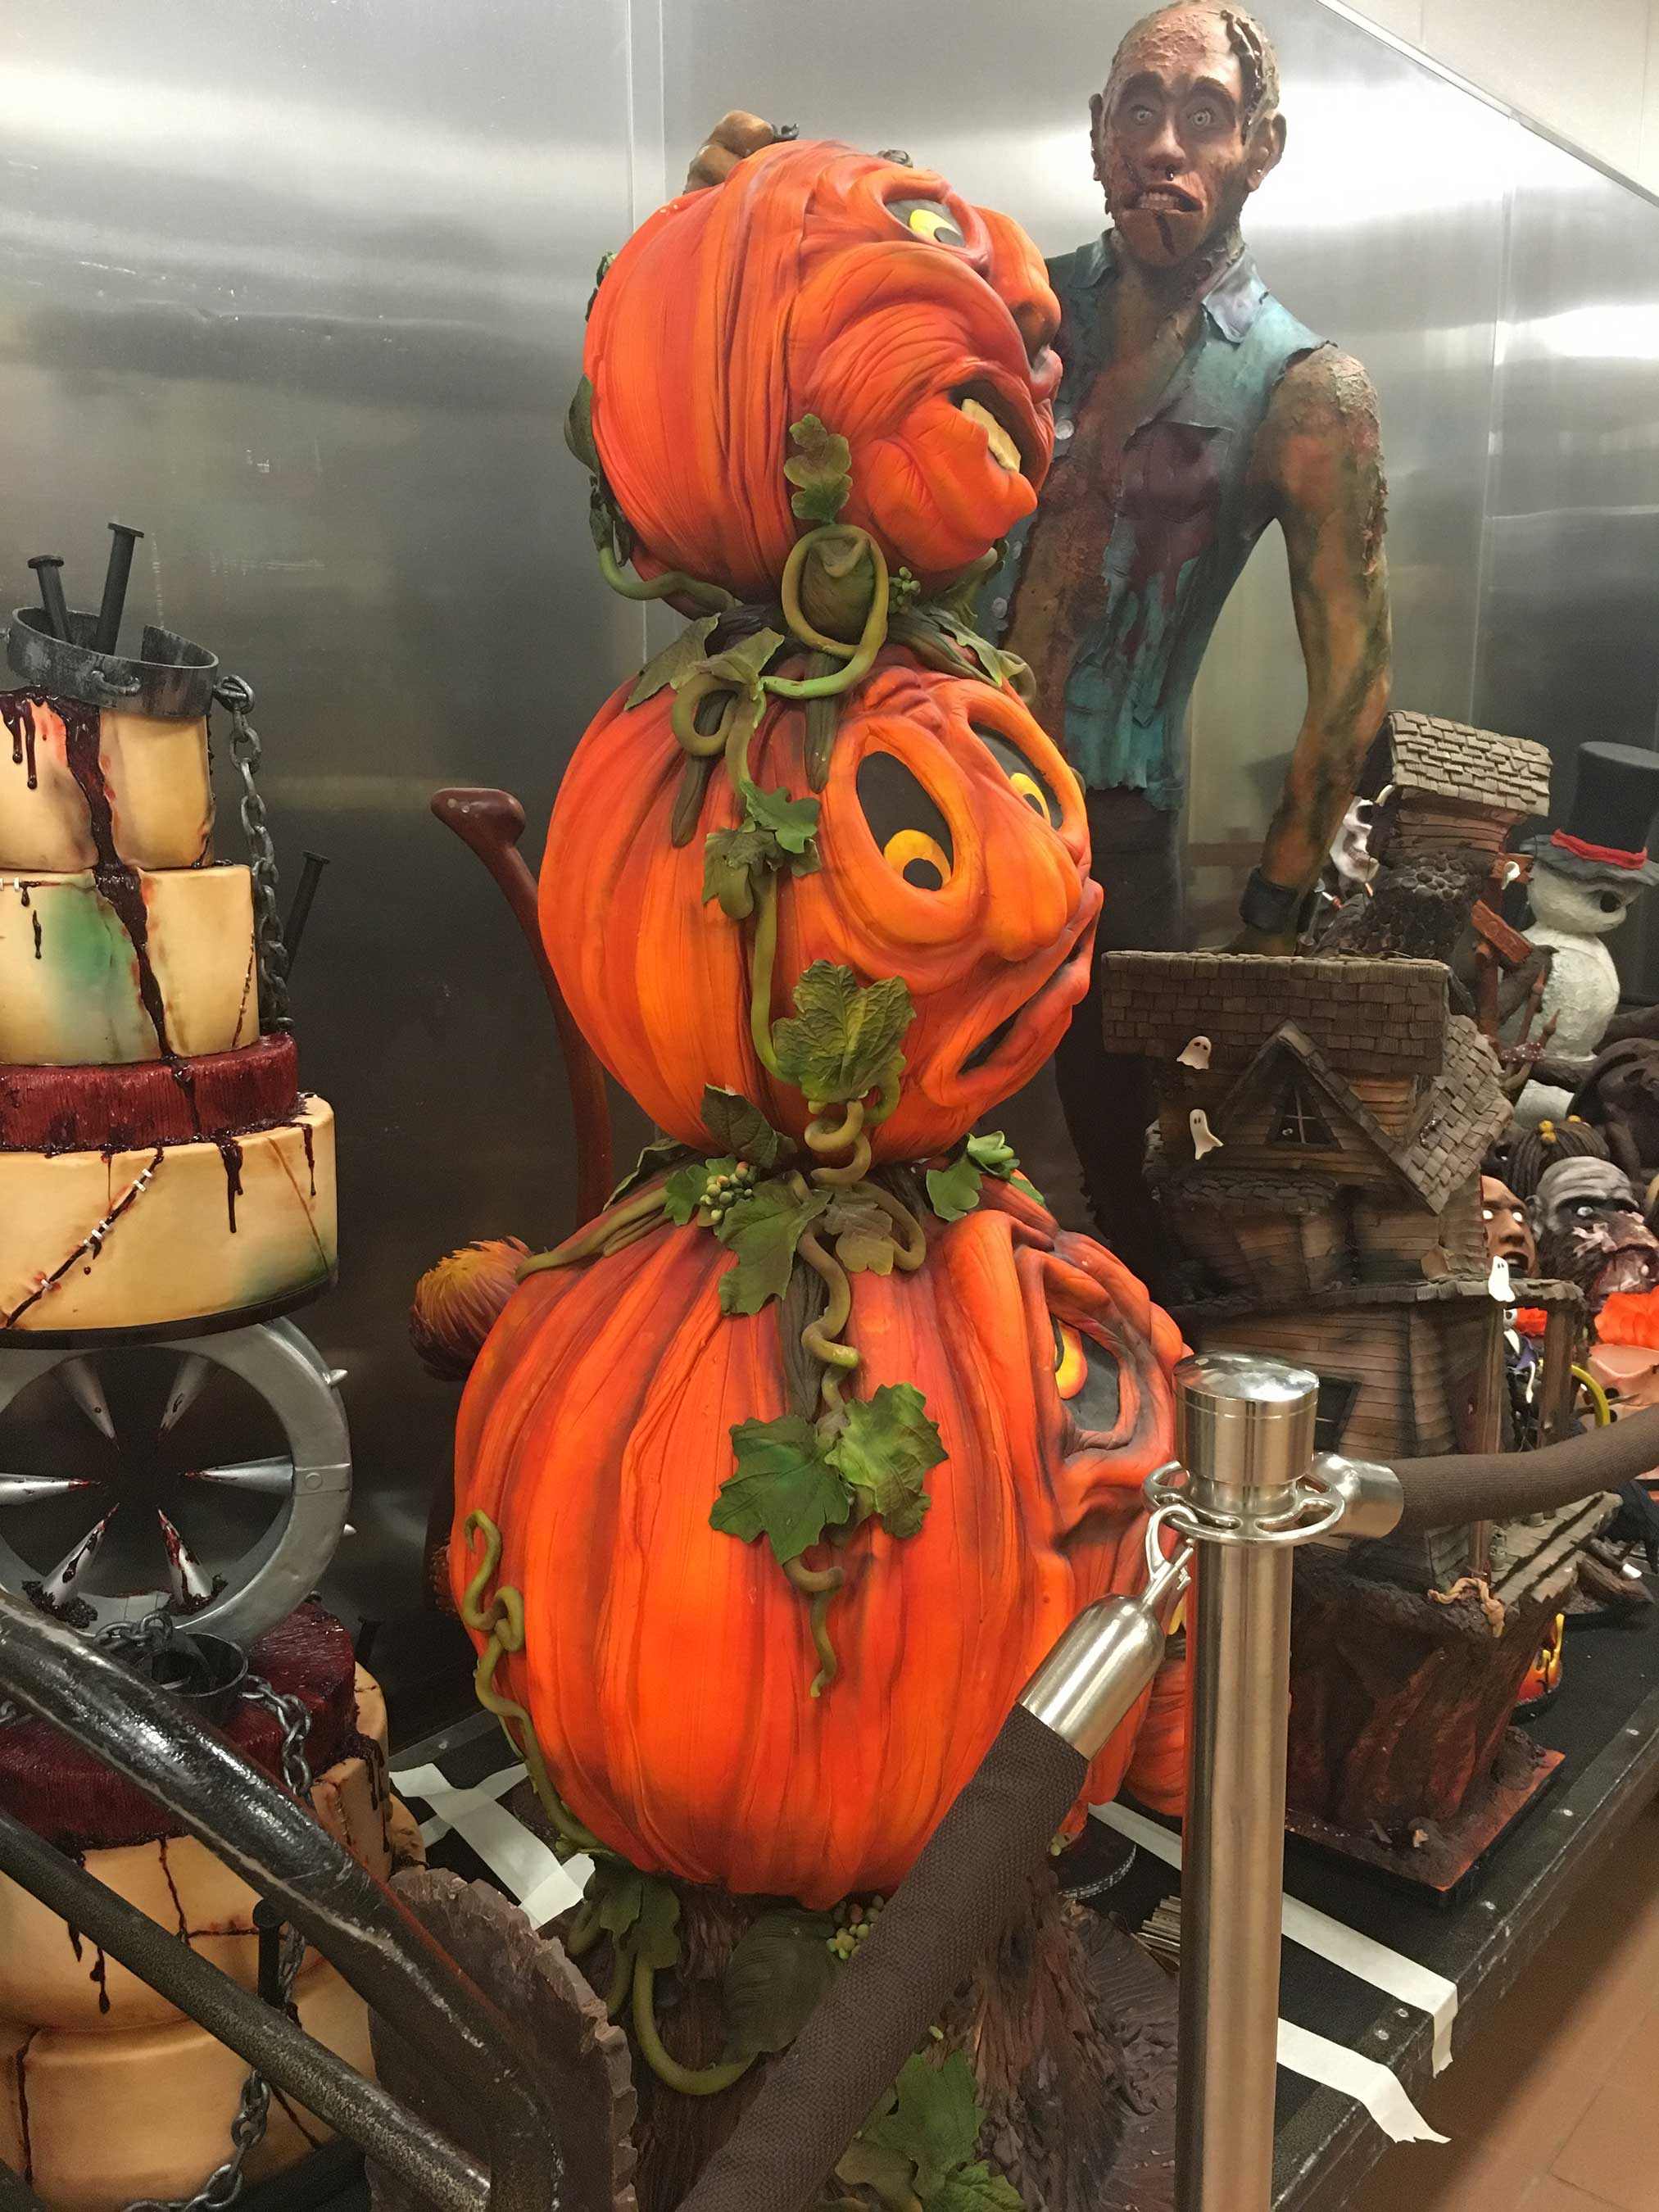 JEAN PHILIPPE PTISSERIE DISPLAYS FRIGHTENINGLY DELICIOUS SHOWPIECES AT BELLAGIO AND ARIA